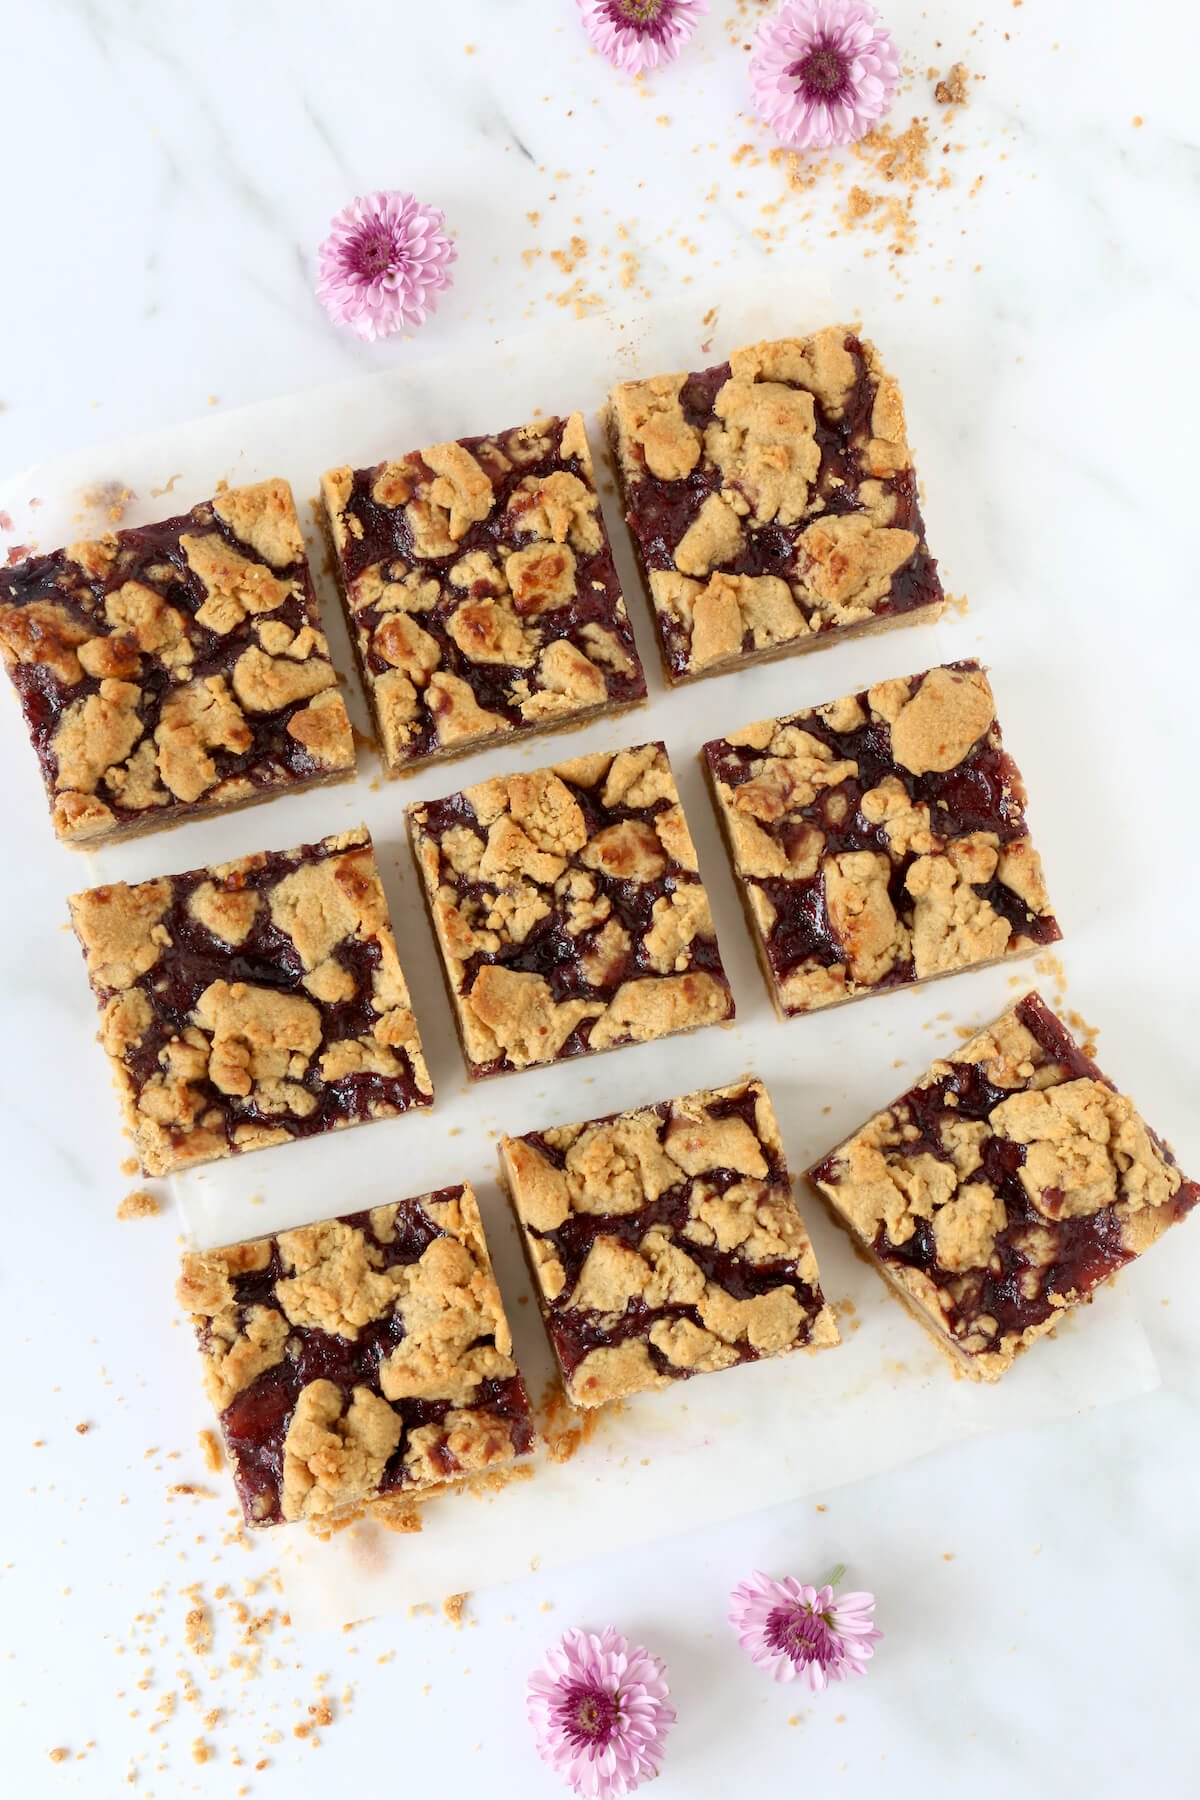 A square cut into nine pieces of peanut butter and jelly bars with flowers sprinkled around.